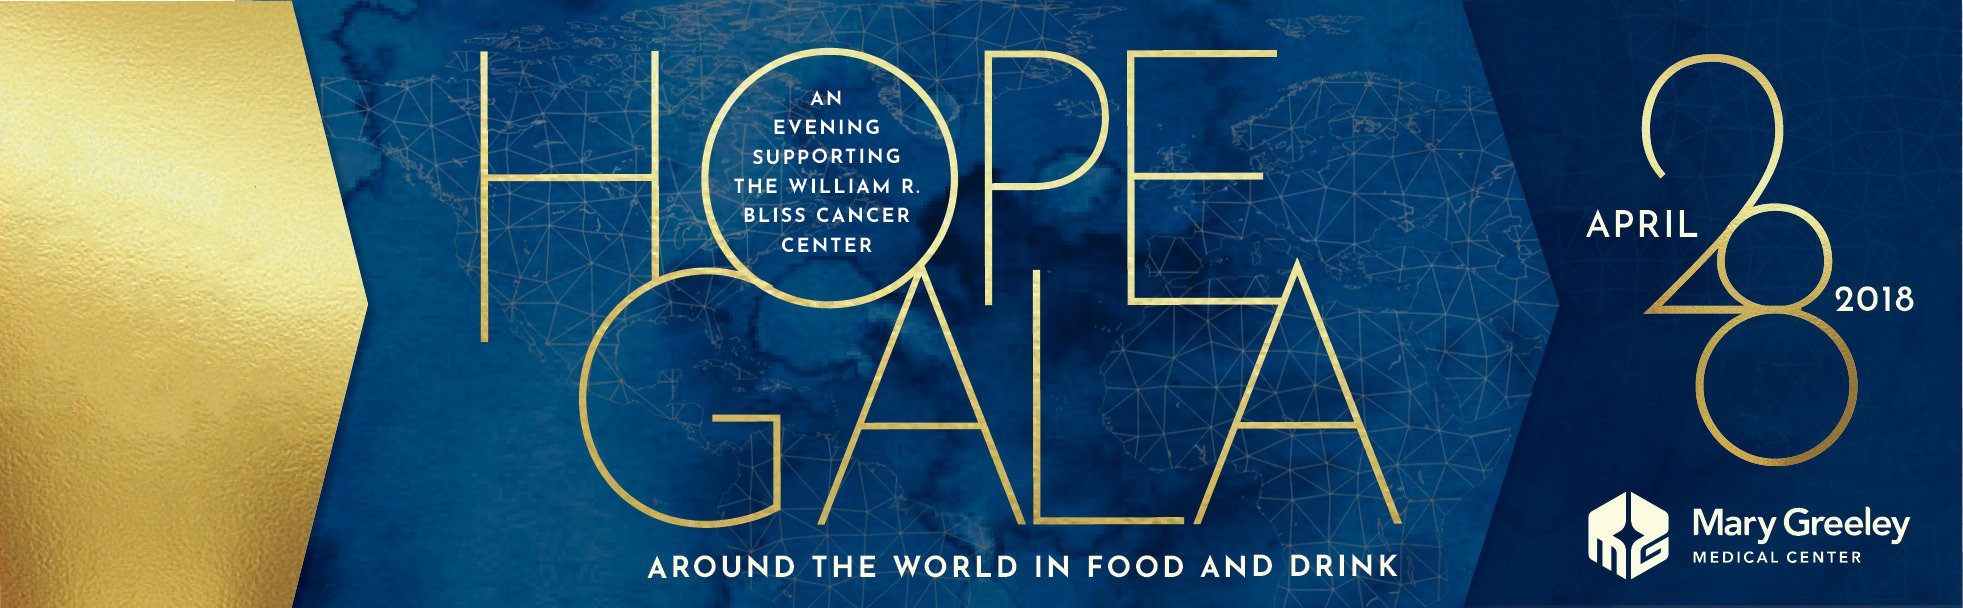 Join us for the 2018 Hope Gala - An Evening Supporting the William R Bliss Cancer Center. Around the World in Food and Drink April 28, 2018